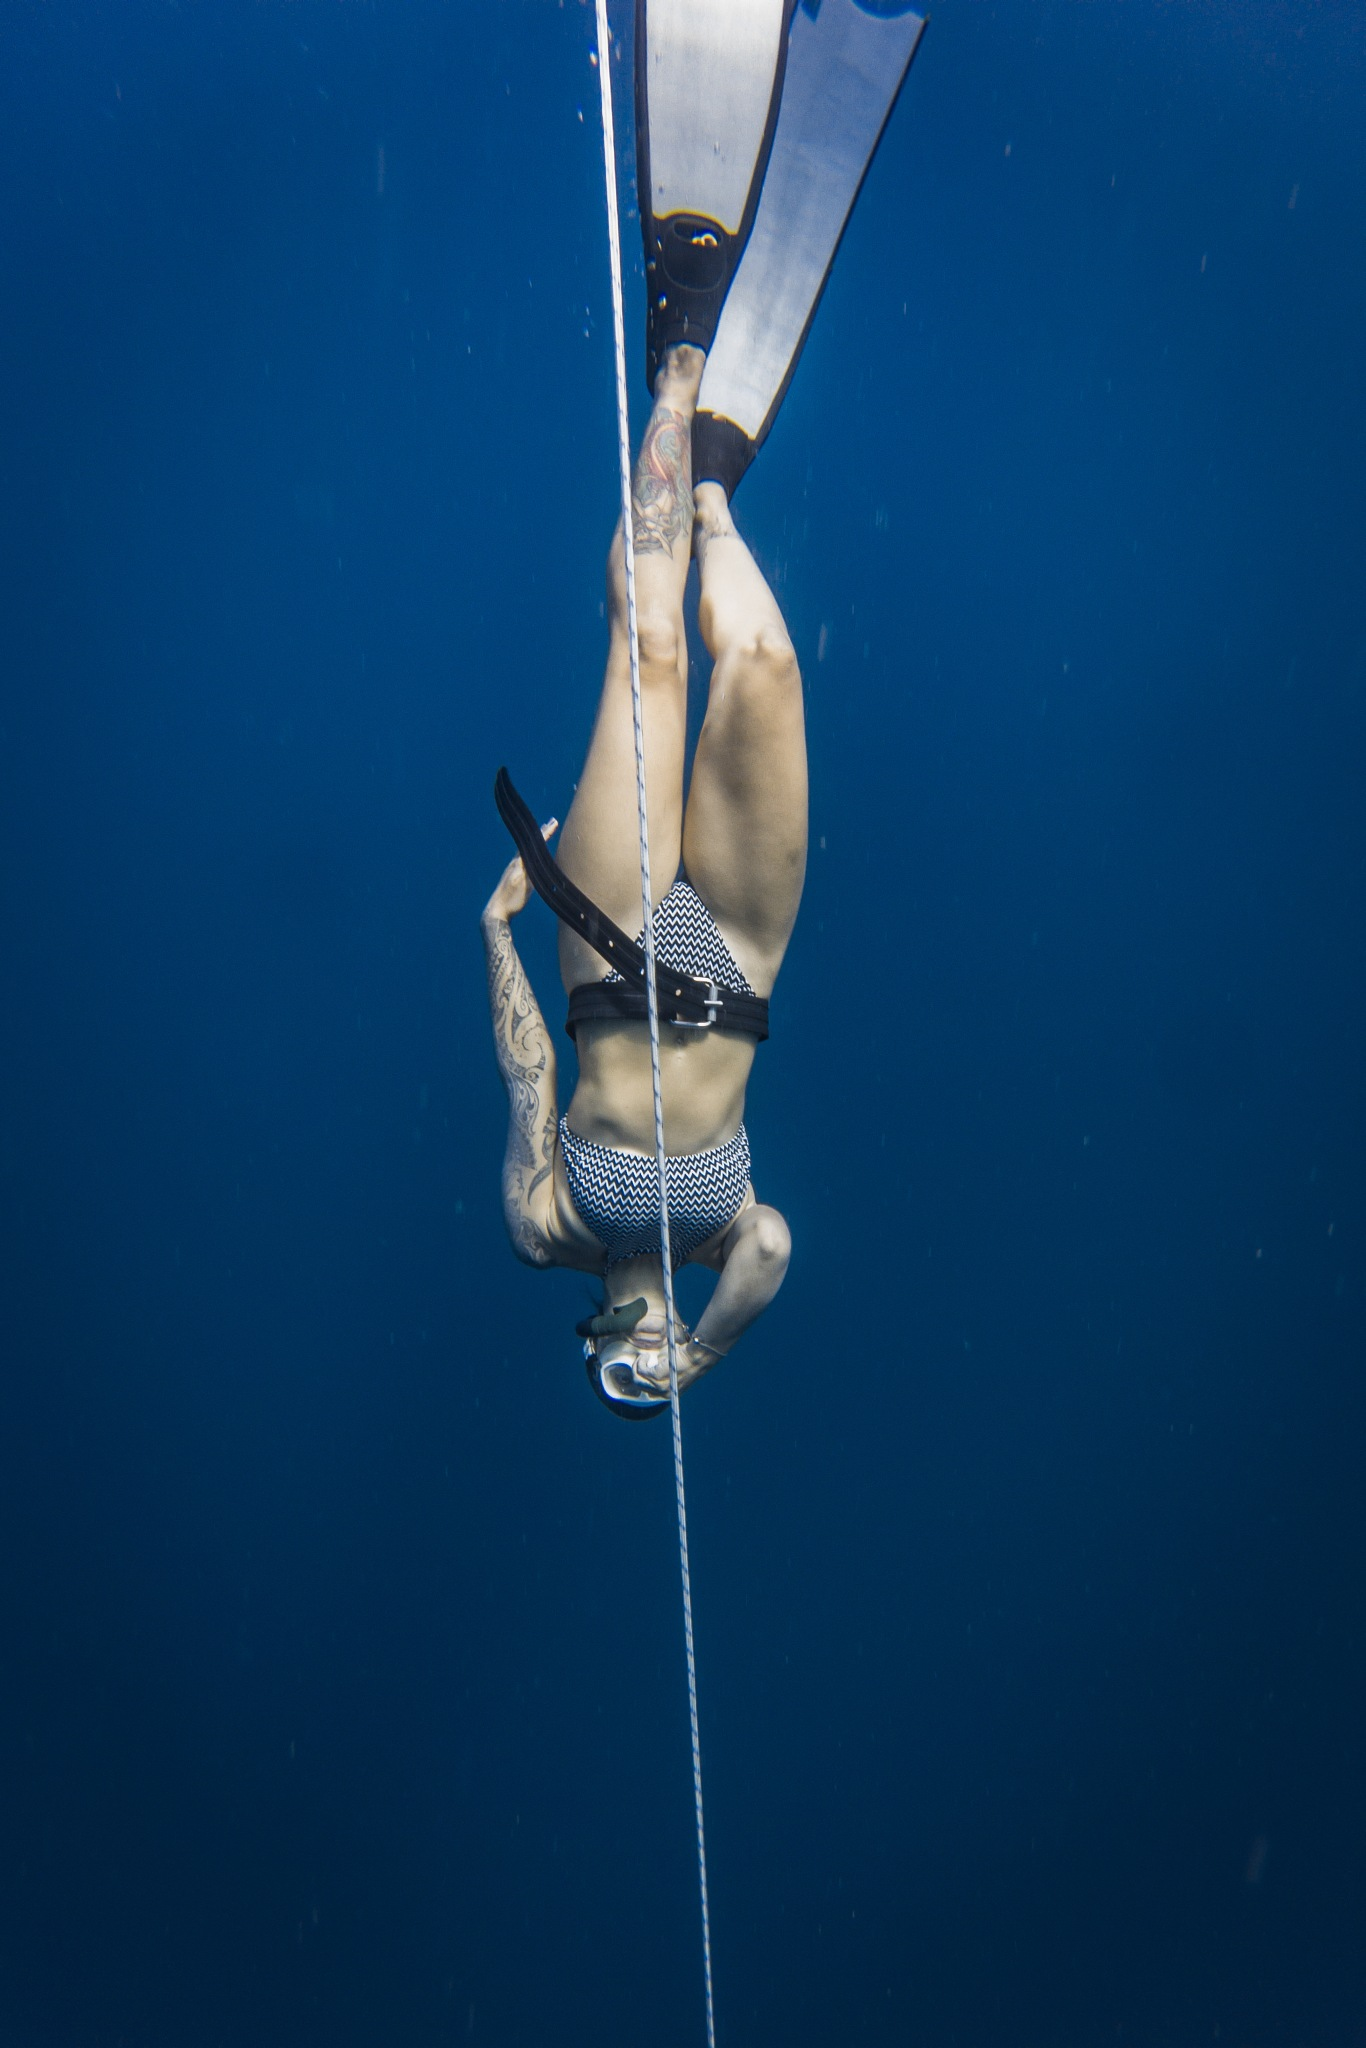 Freedive Training by Yoshua Surjo